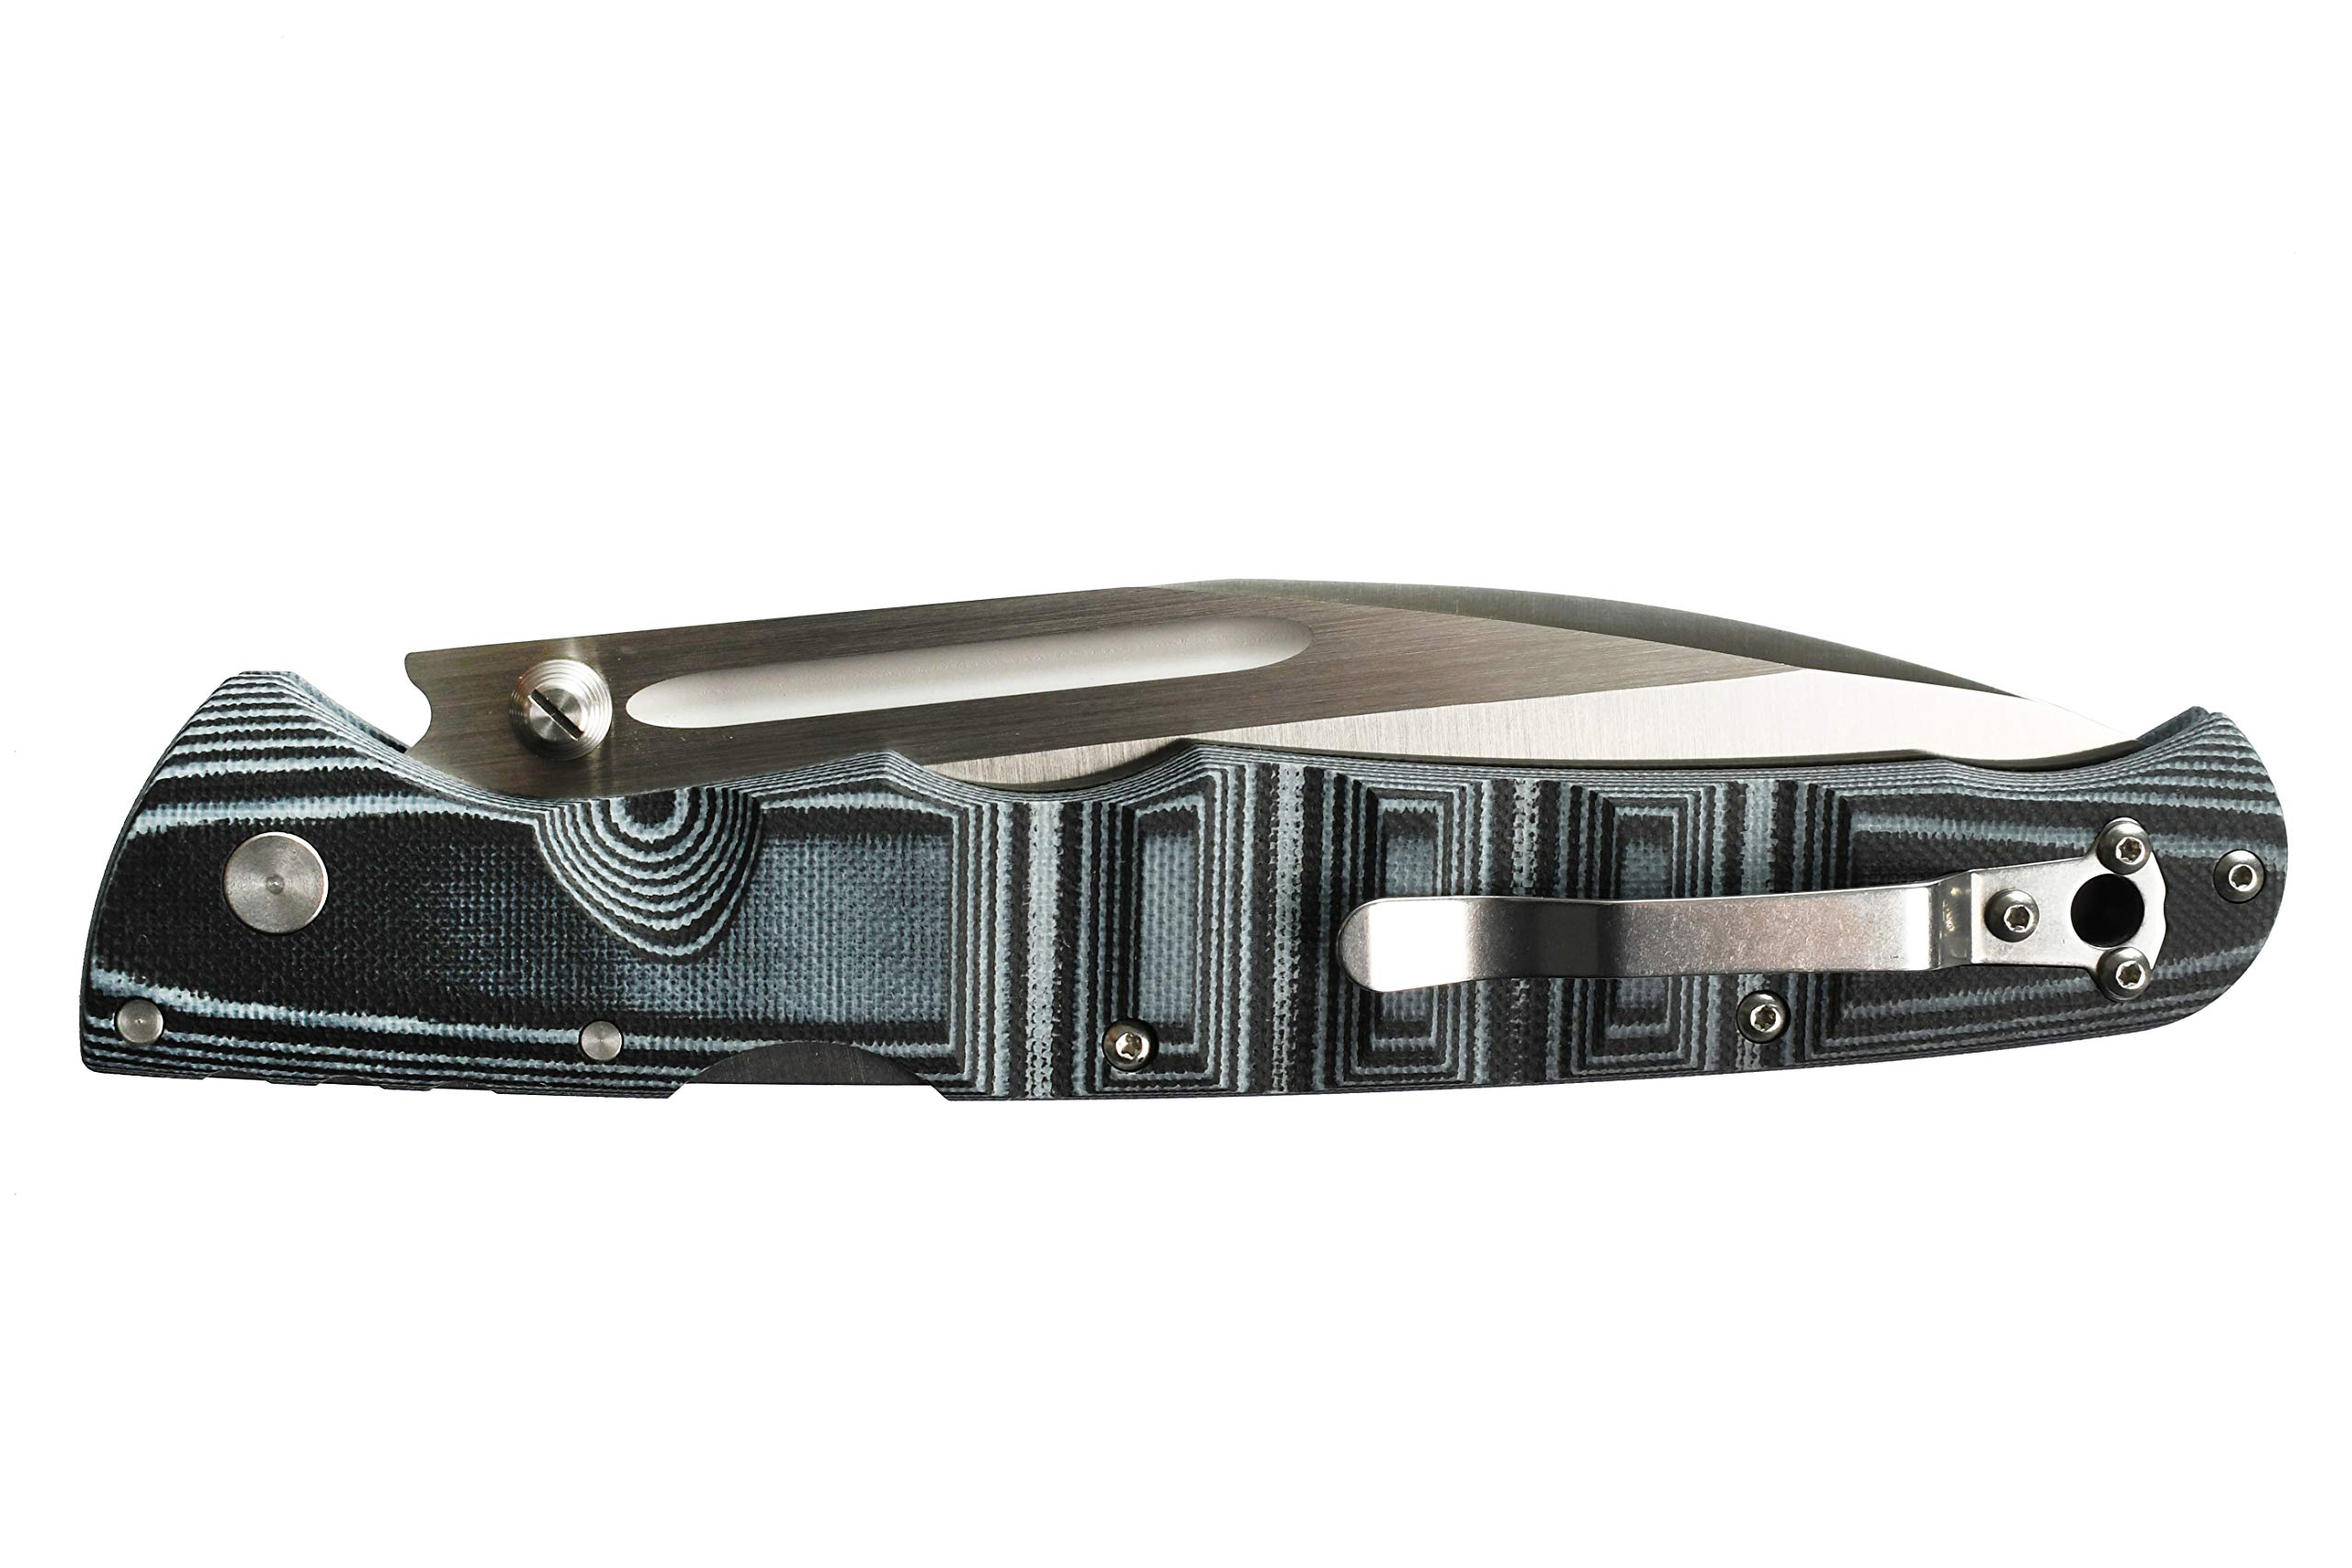 Cold Steel EDC Folding Pocket Knife, Frenzy 3 by Cold Steel (Image #3)